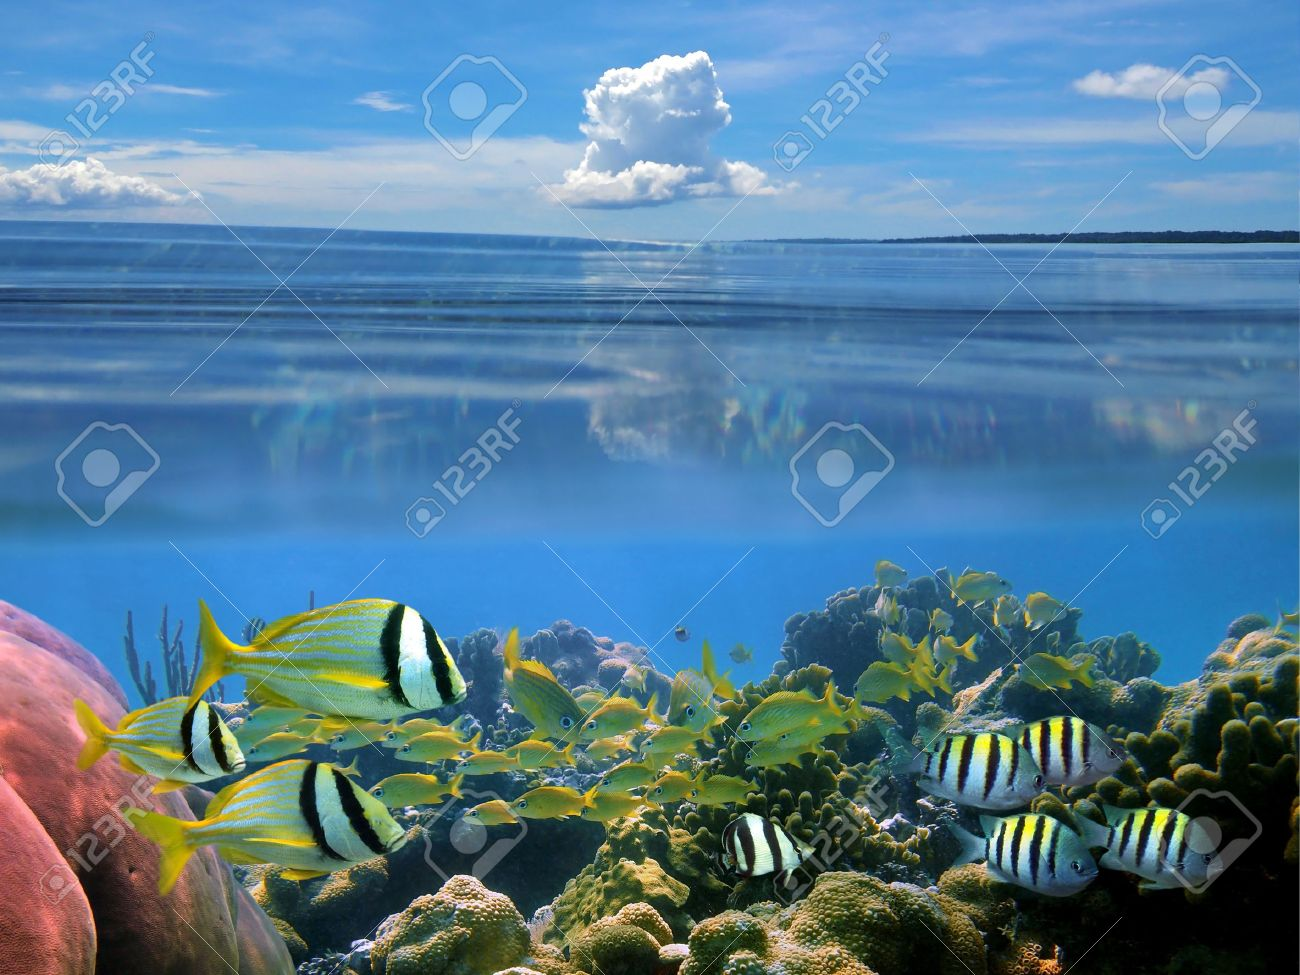 Surface and underwater view with school of tropical fish, hard coral and blue sky with cloud, Caribbean Stock Photo - 11095758